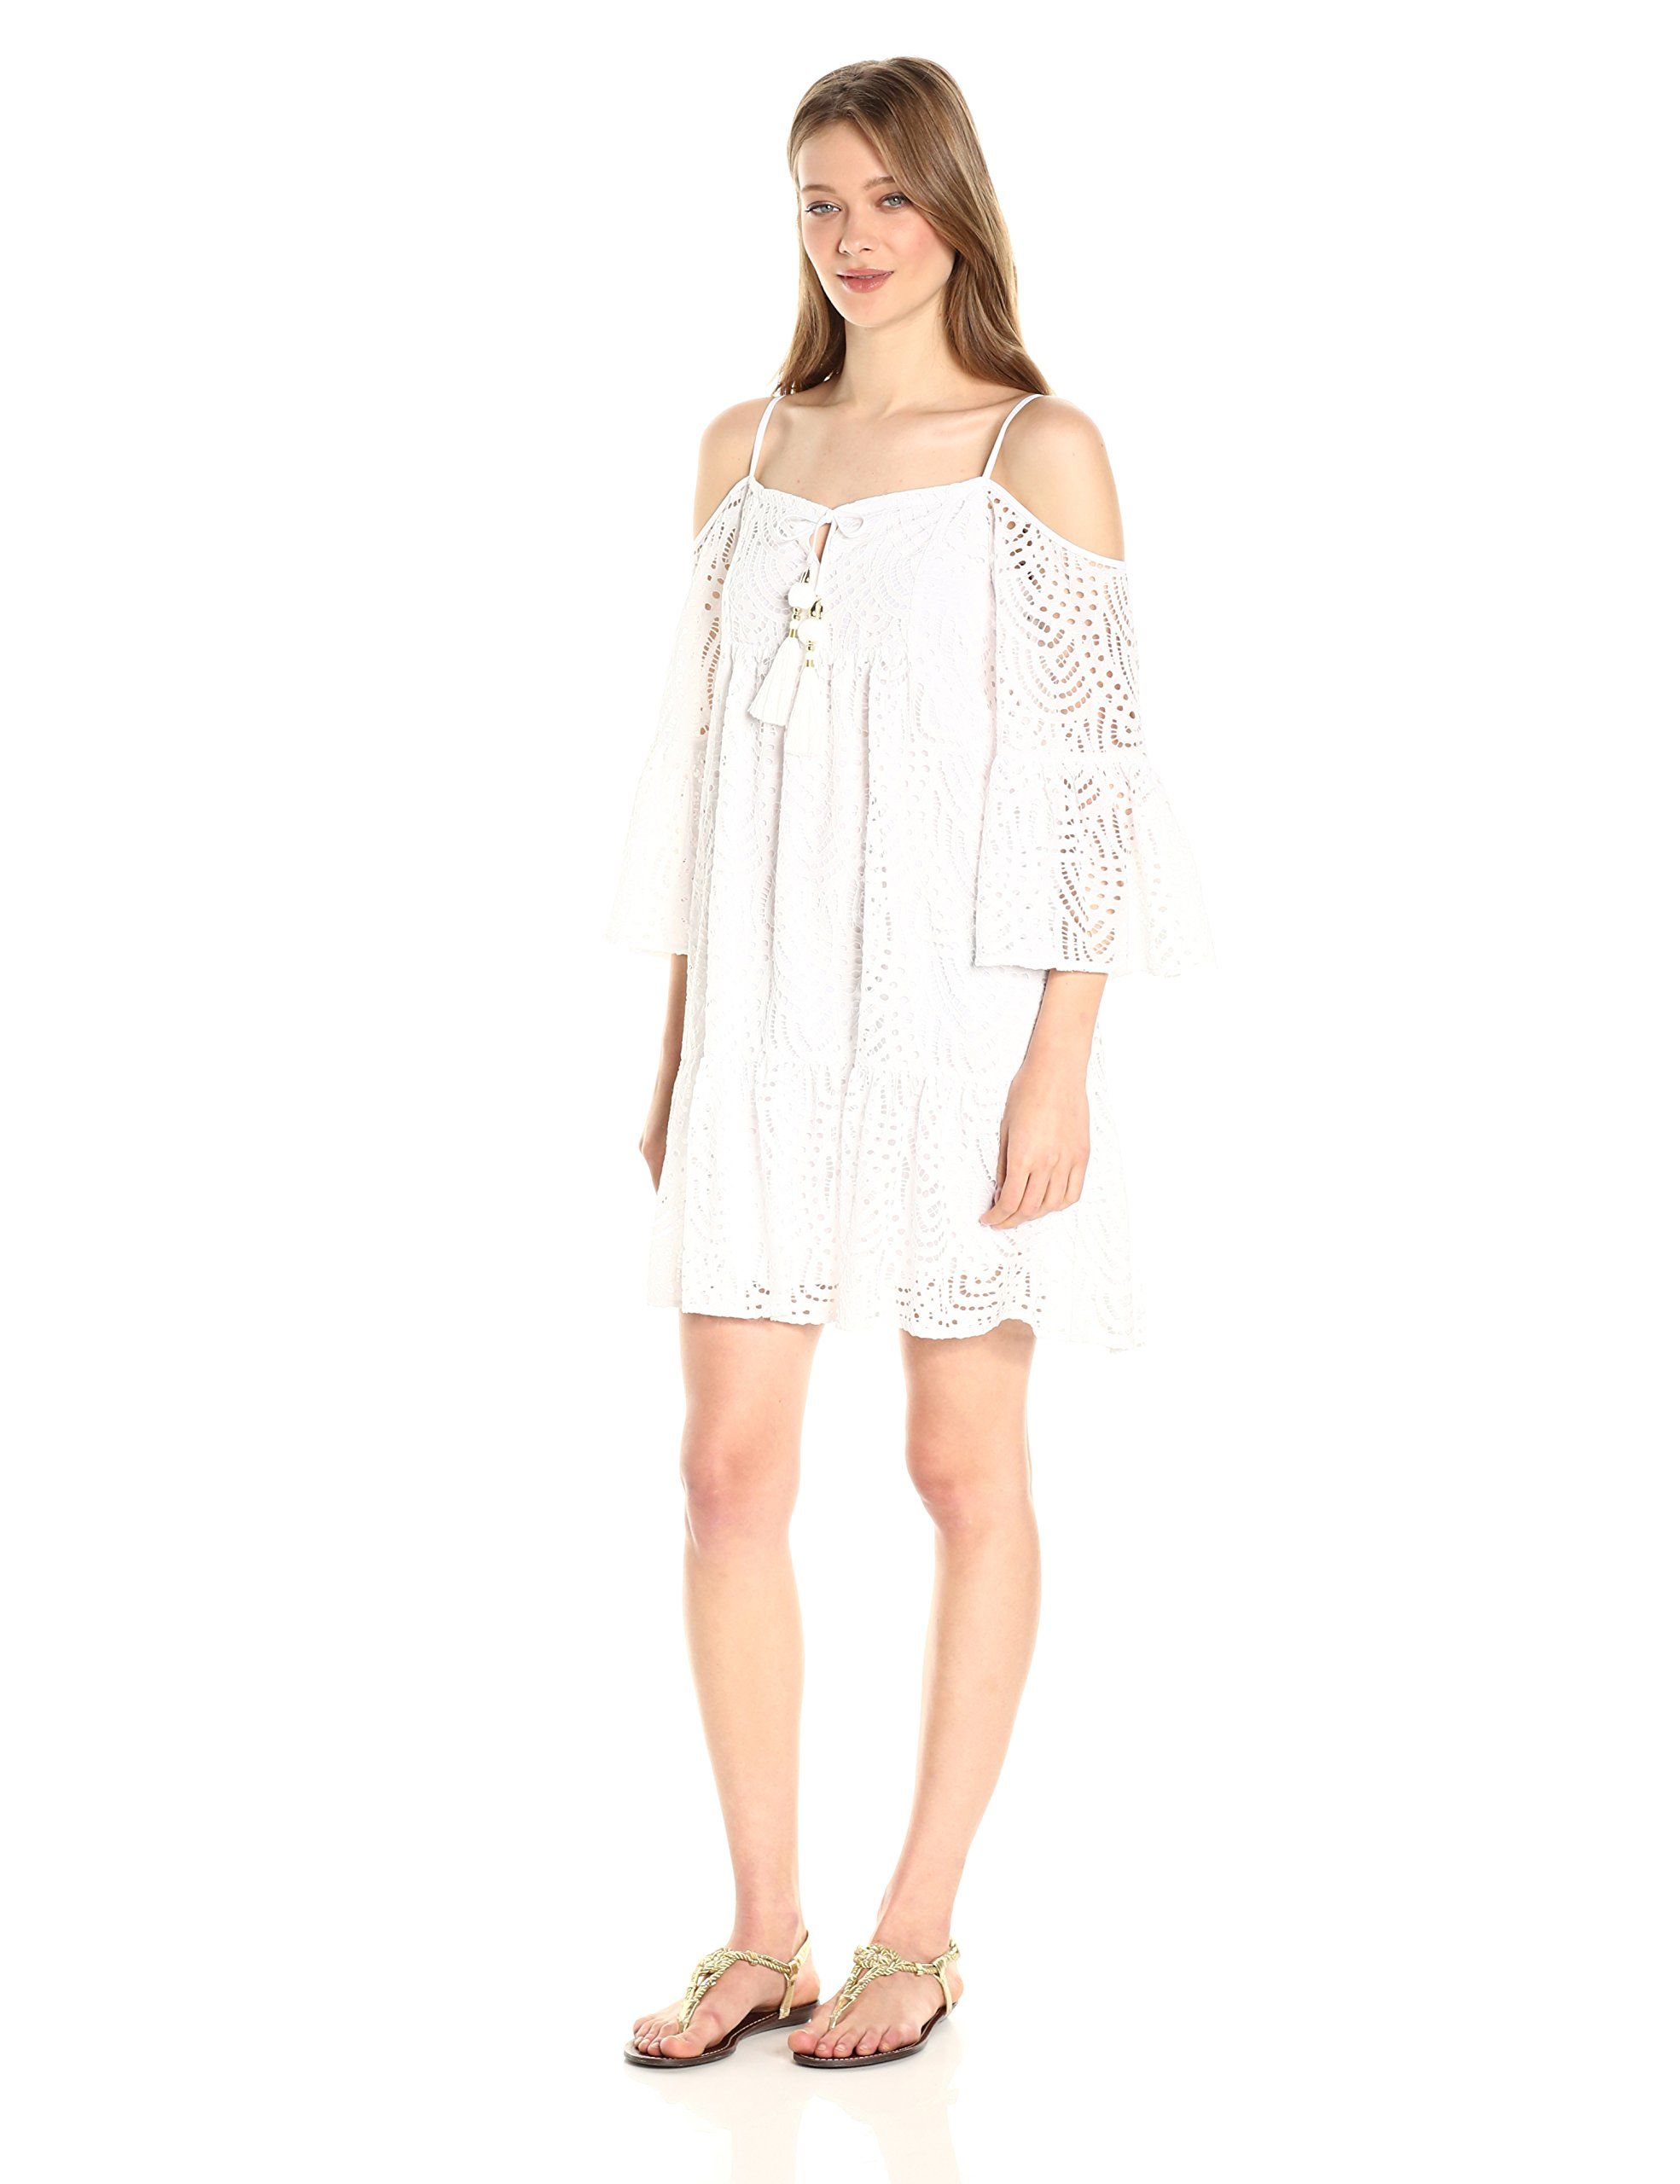 Lilly Pulitzer Women's Alanna Dress, Resort White Marine Tropic Lace, S